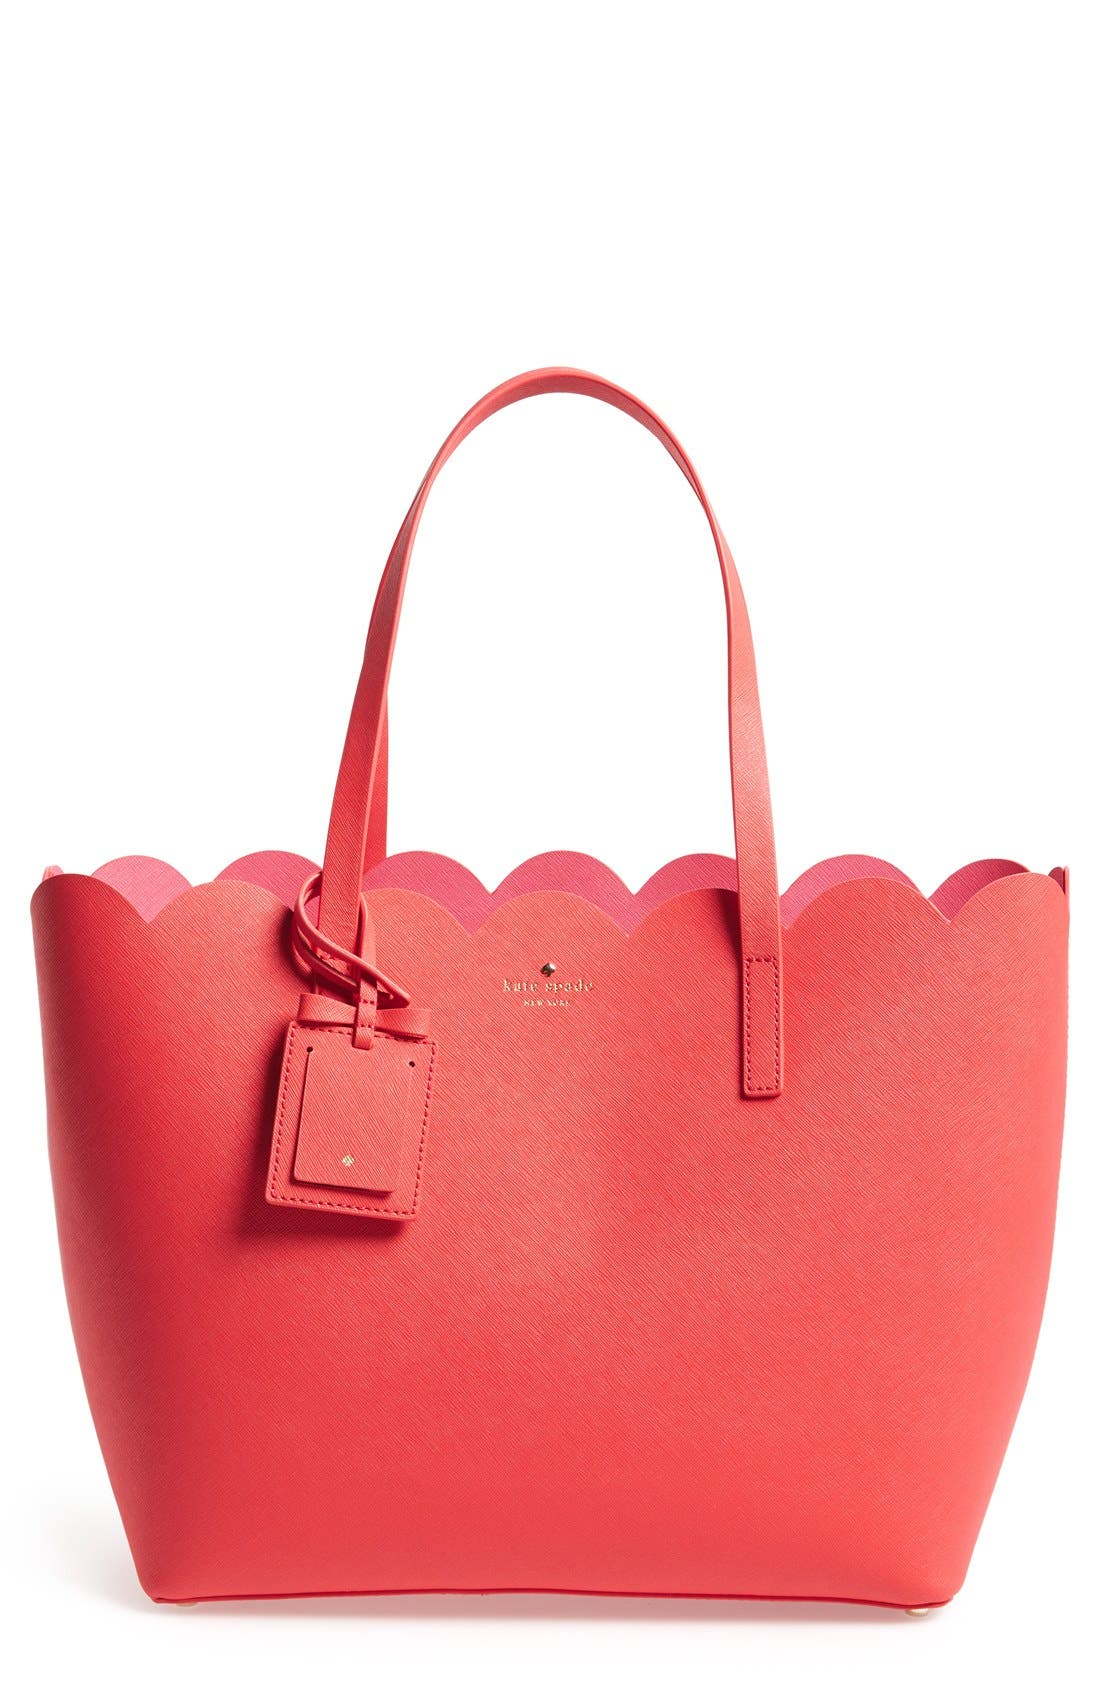 Main Image - kate spade new york 'lily avenue - carrigan' leather tote